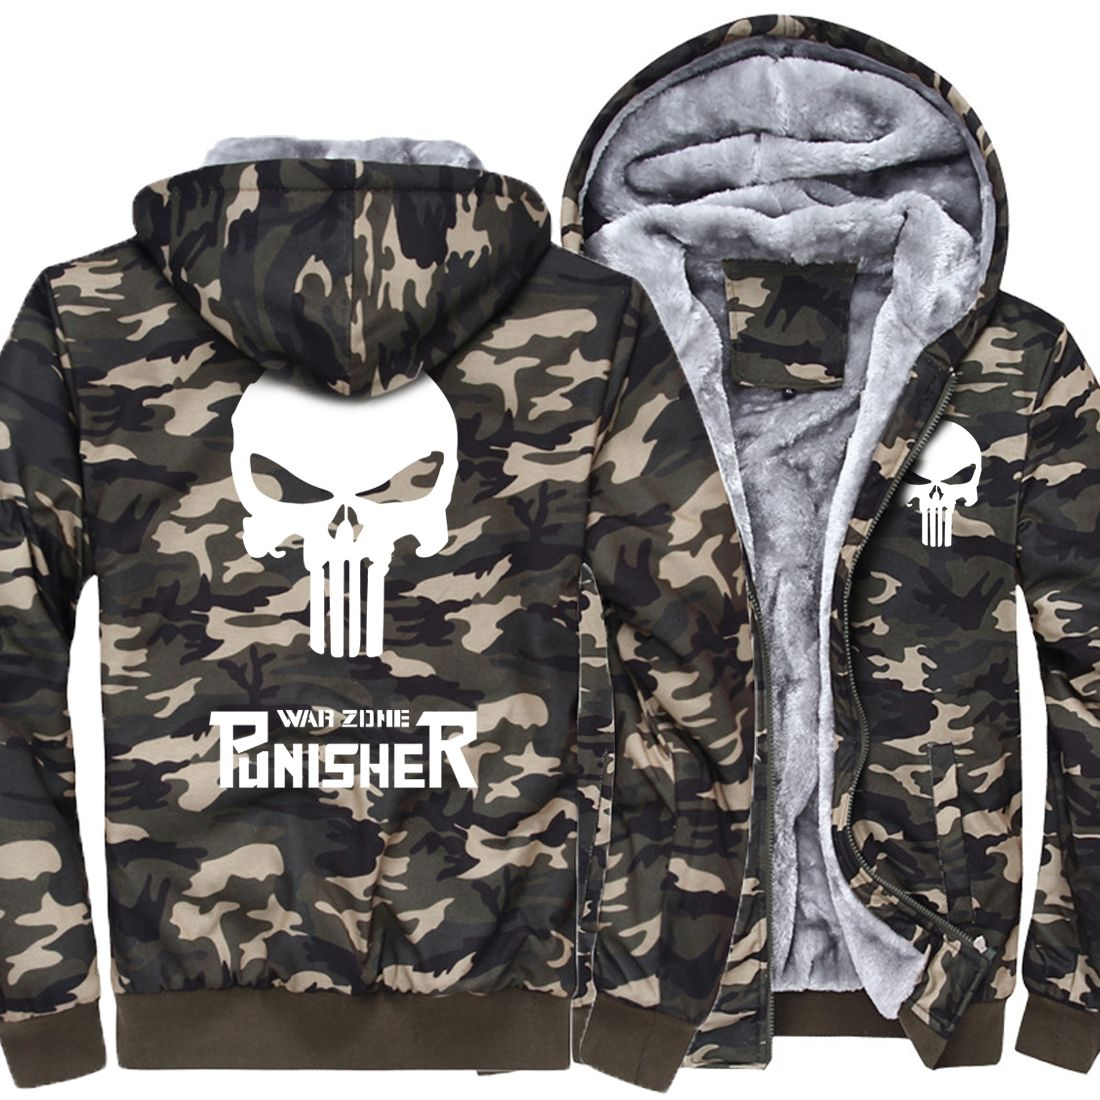 Camo Hoodie Friends 2017 Thick Jacket Men Funny Hoodies Homme Skull Tracksuit